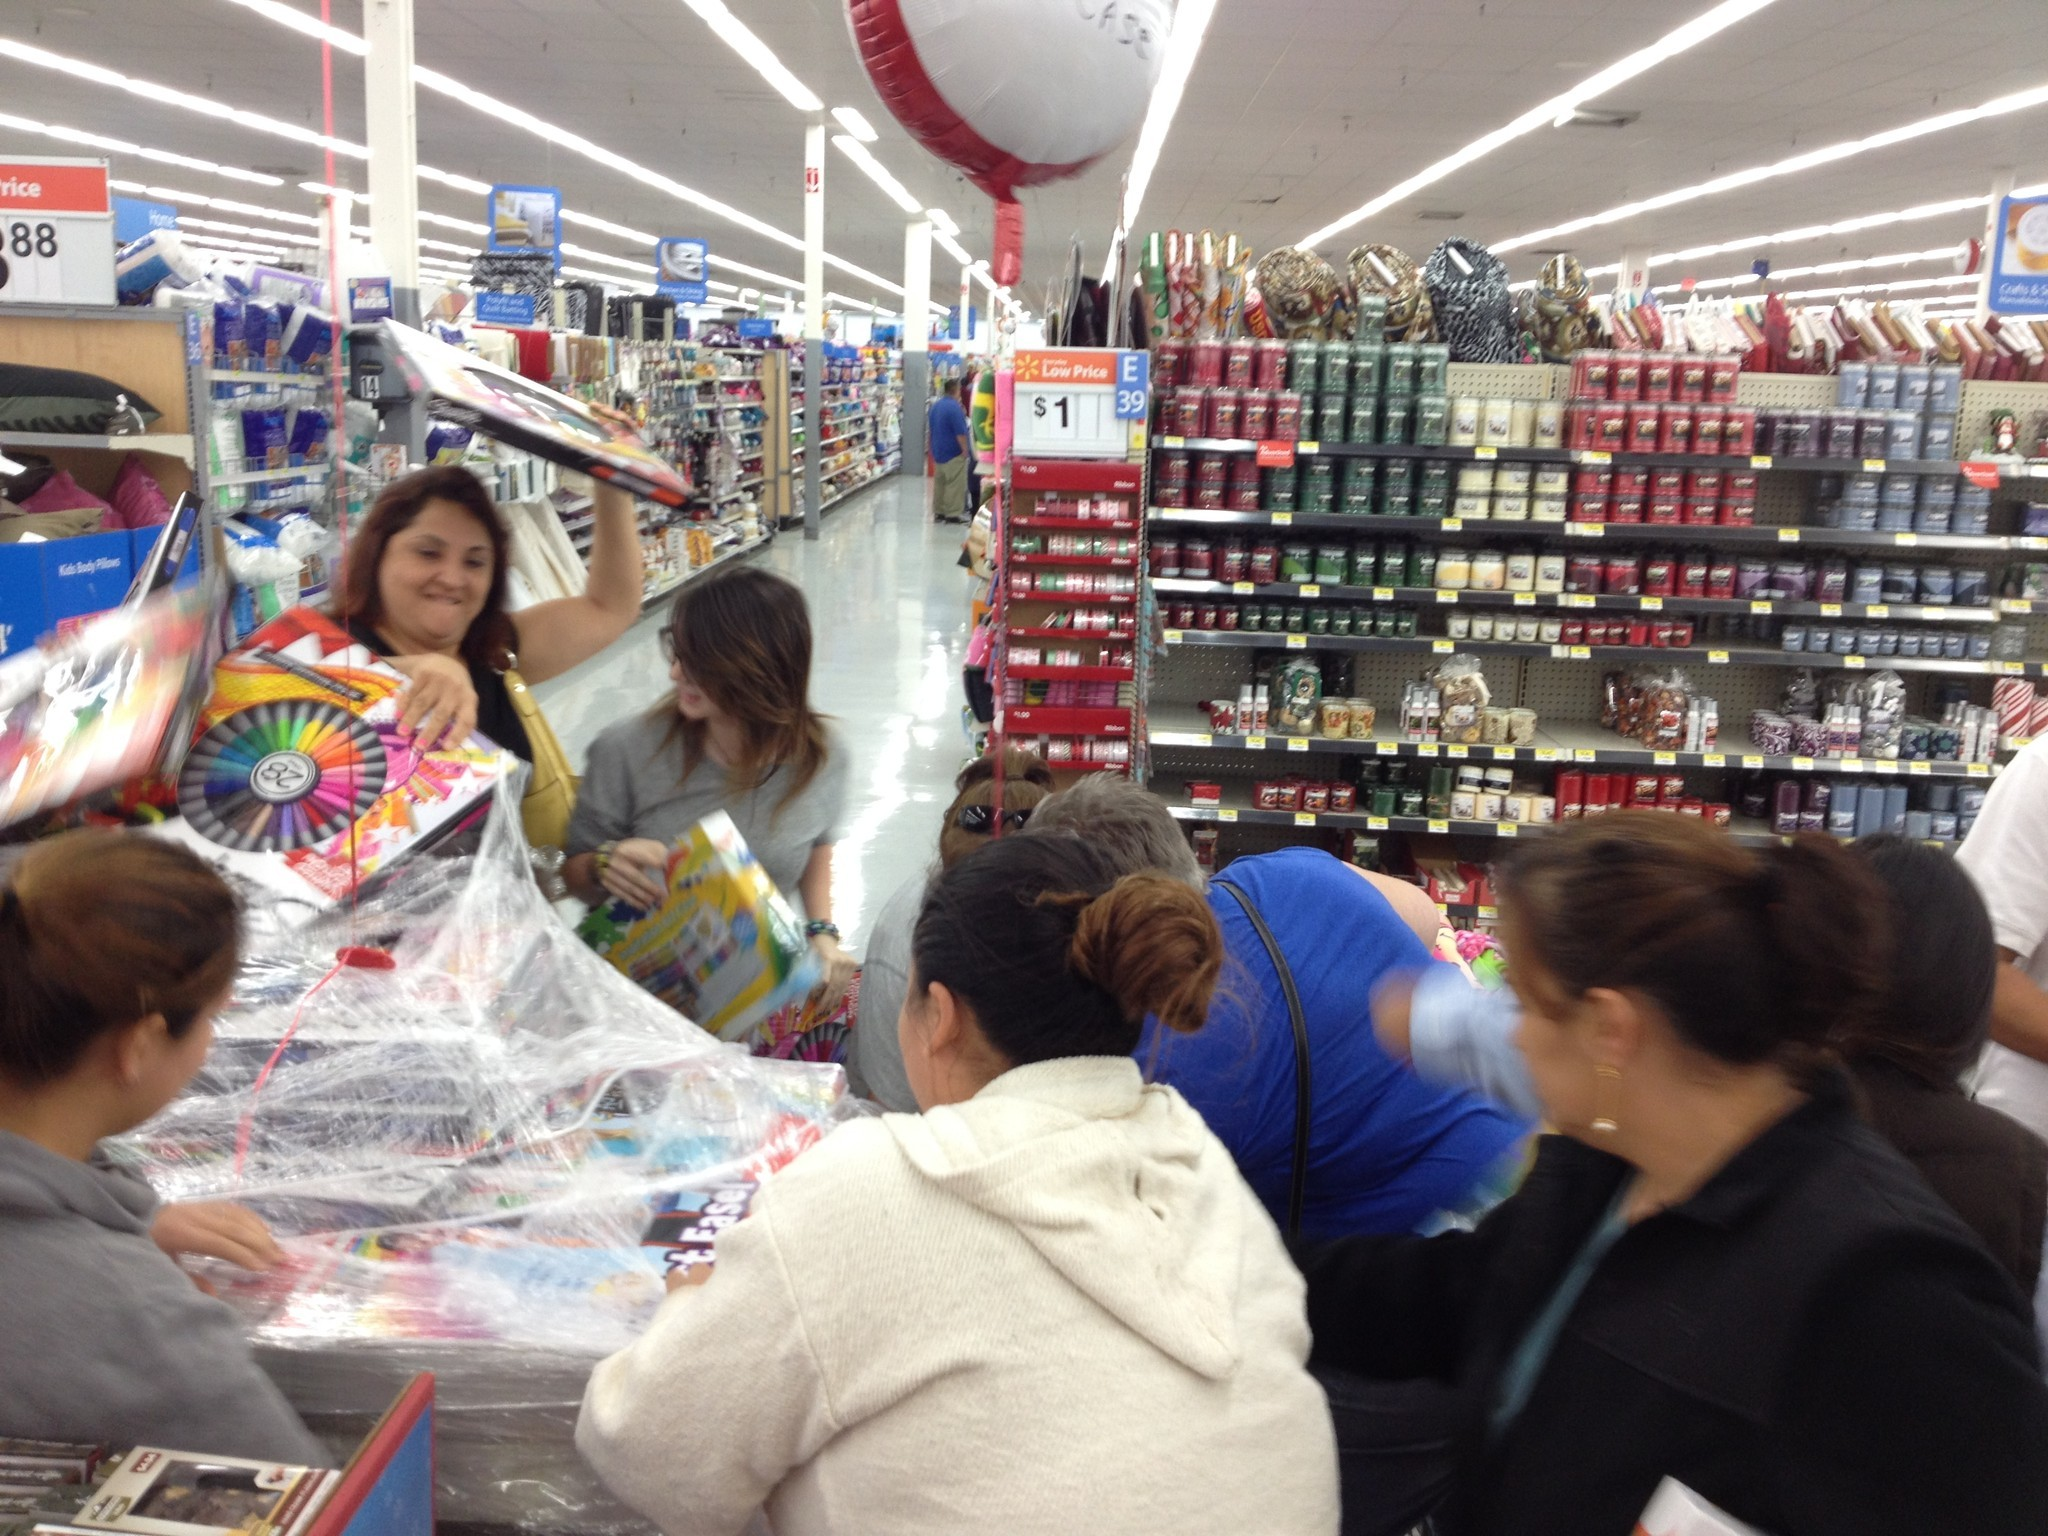 Shoppers at a Wal-Mart in Duarte on Thanksgiving scramble for Crayola crayon sets marked down to $11 from nearly $20.